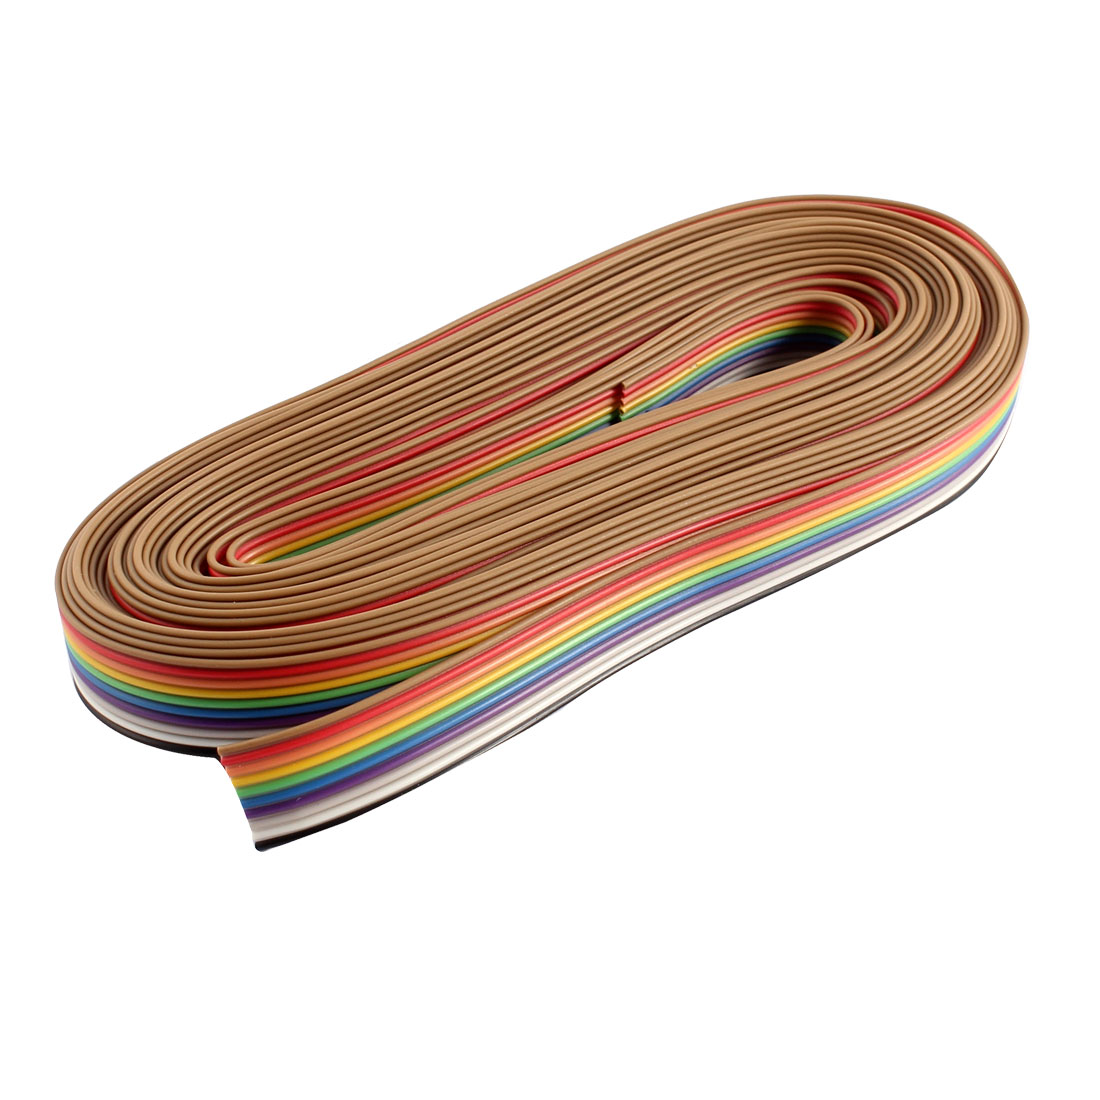 20Ft 6M Long 10 Way 10 Pin Rainbow Color Flat Ribbon Cable IDC Wire 1.27mm Pitch DIY